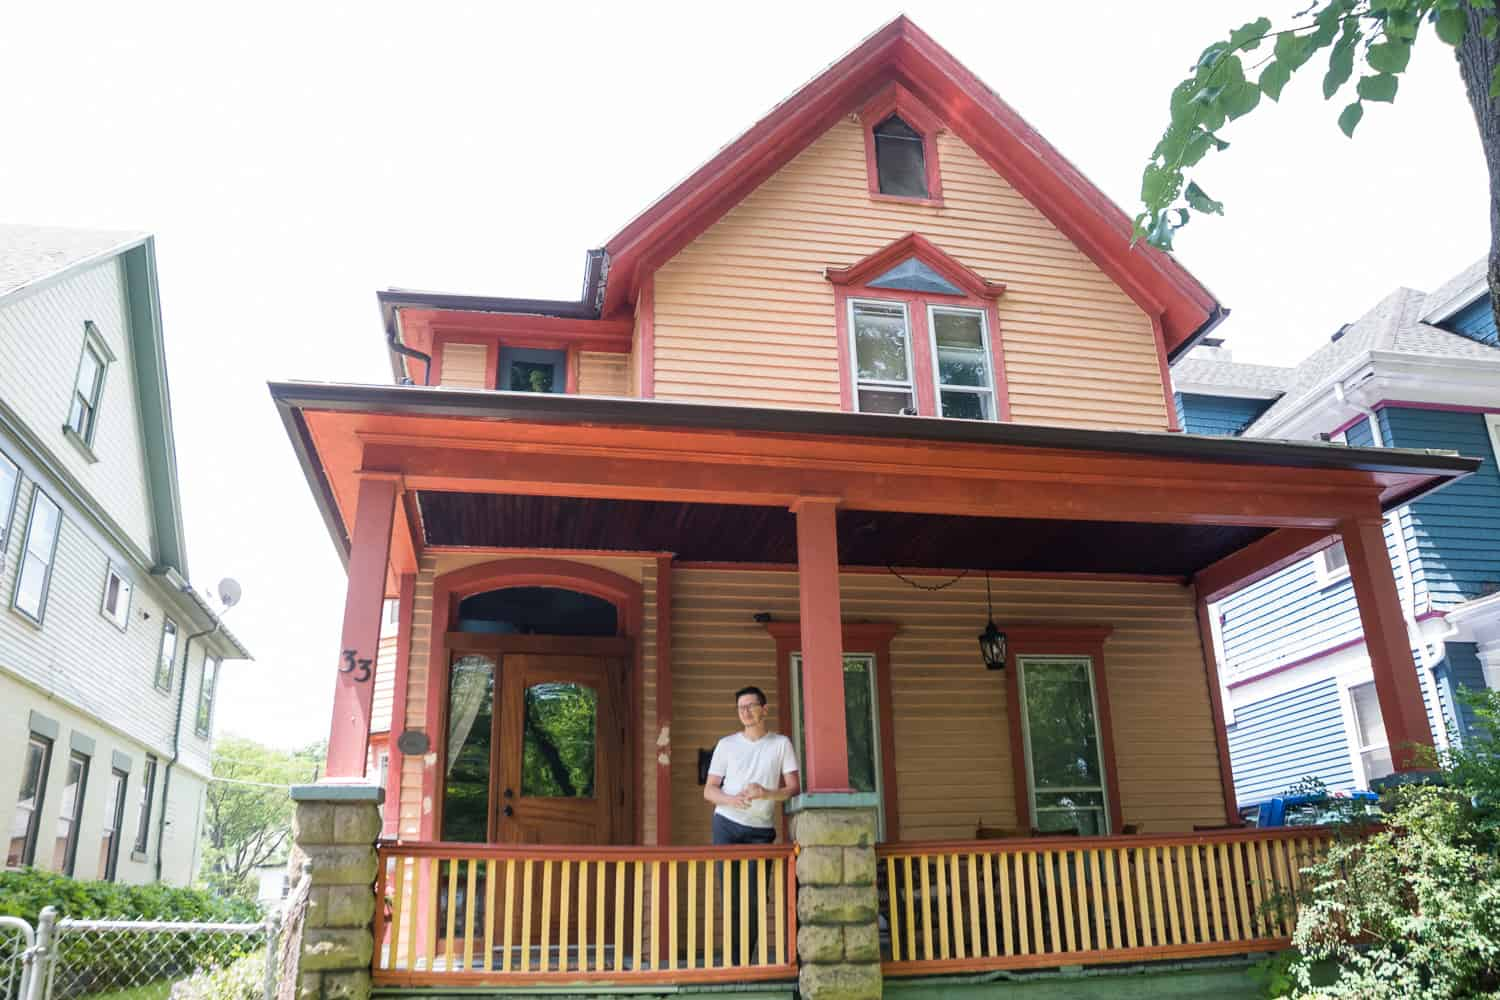 a groom standing on a porch of a house what is ornage and rust colored.